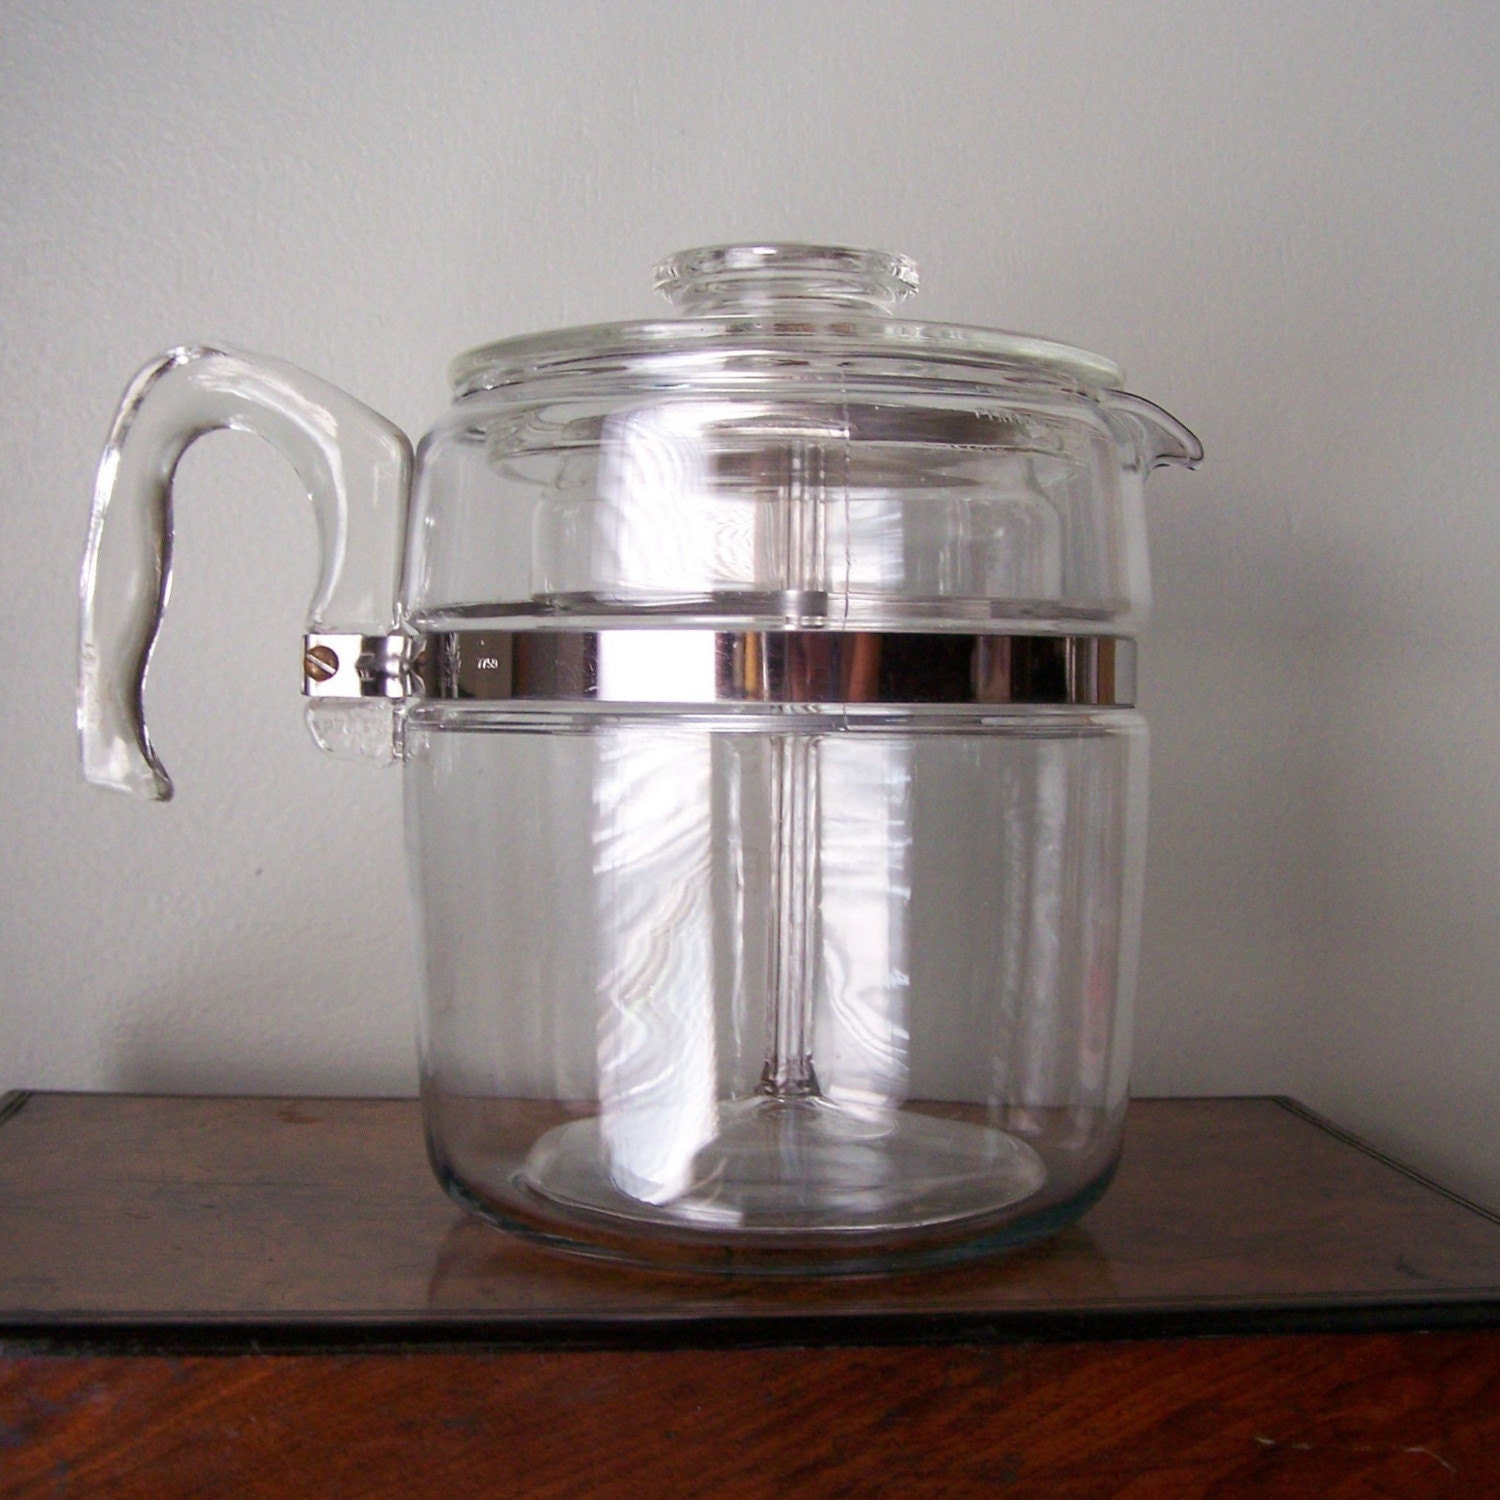 Pyrex Coffee Maker How To Use : Vintage Glass Pyrex Coffee Percolator Large 9 Cup Carafe